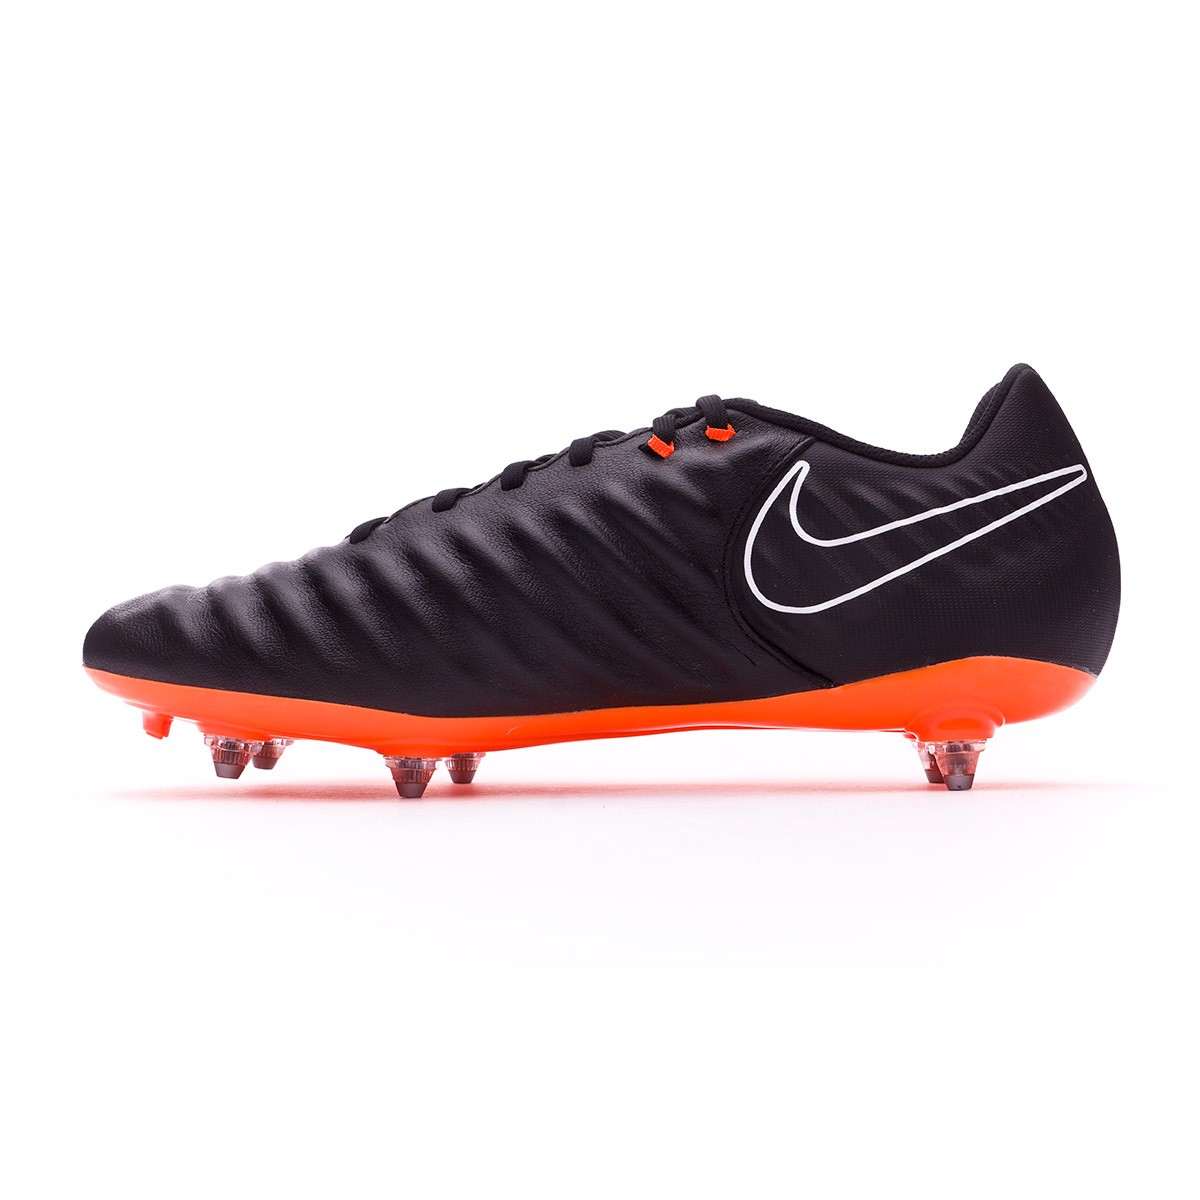 c5424941dc Chuteira Nike Tiempo Legend VII Academy SG Black-Total orange-White - Loja  de futebol Fútbol Emotion